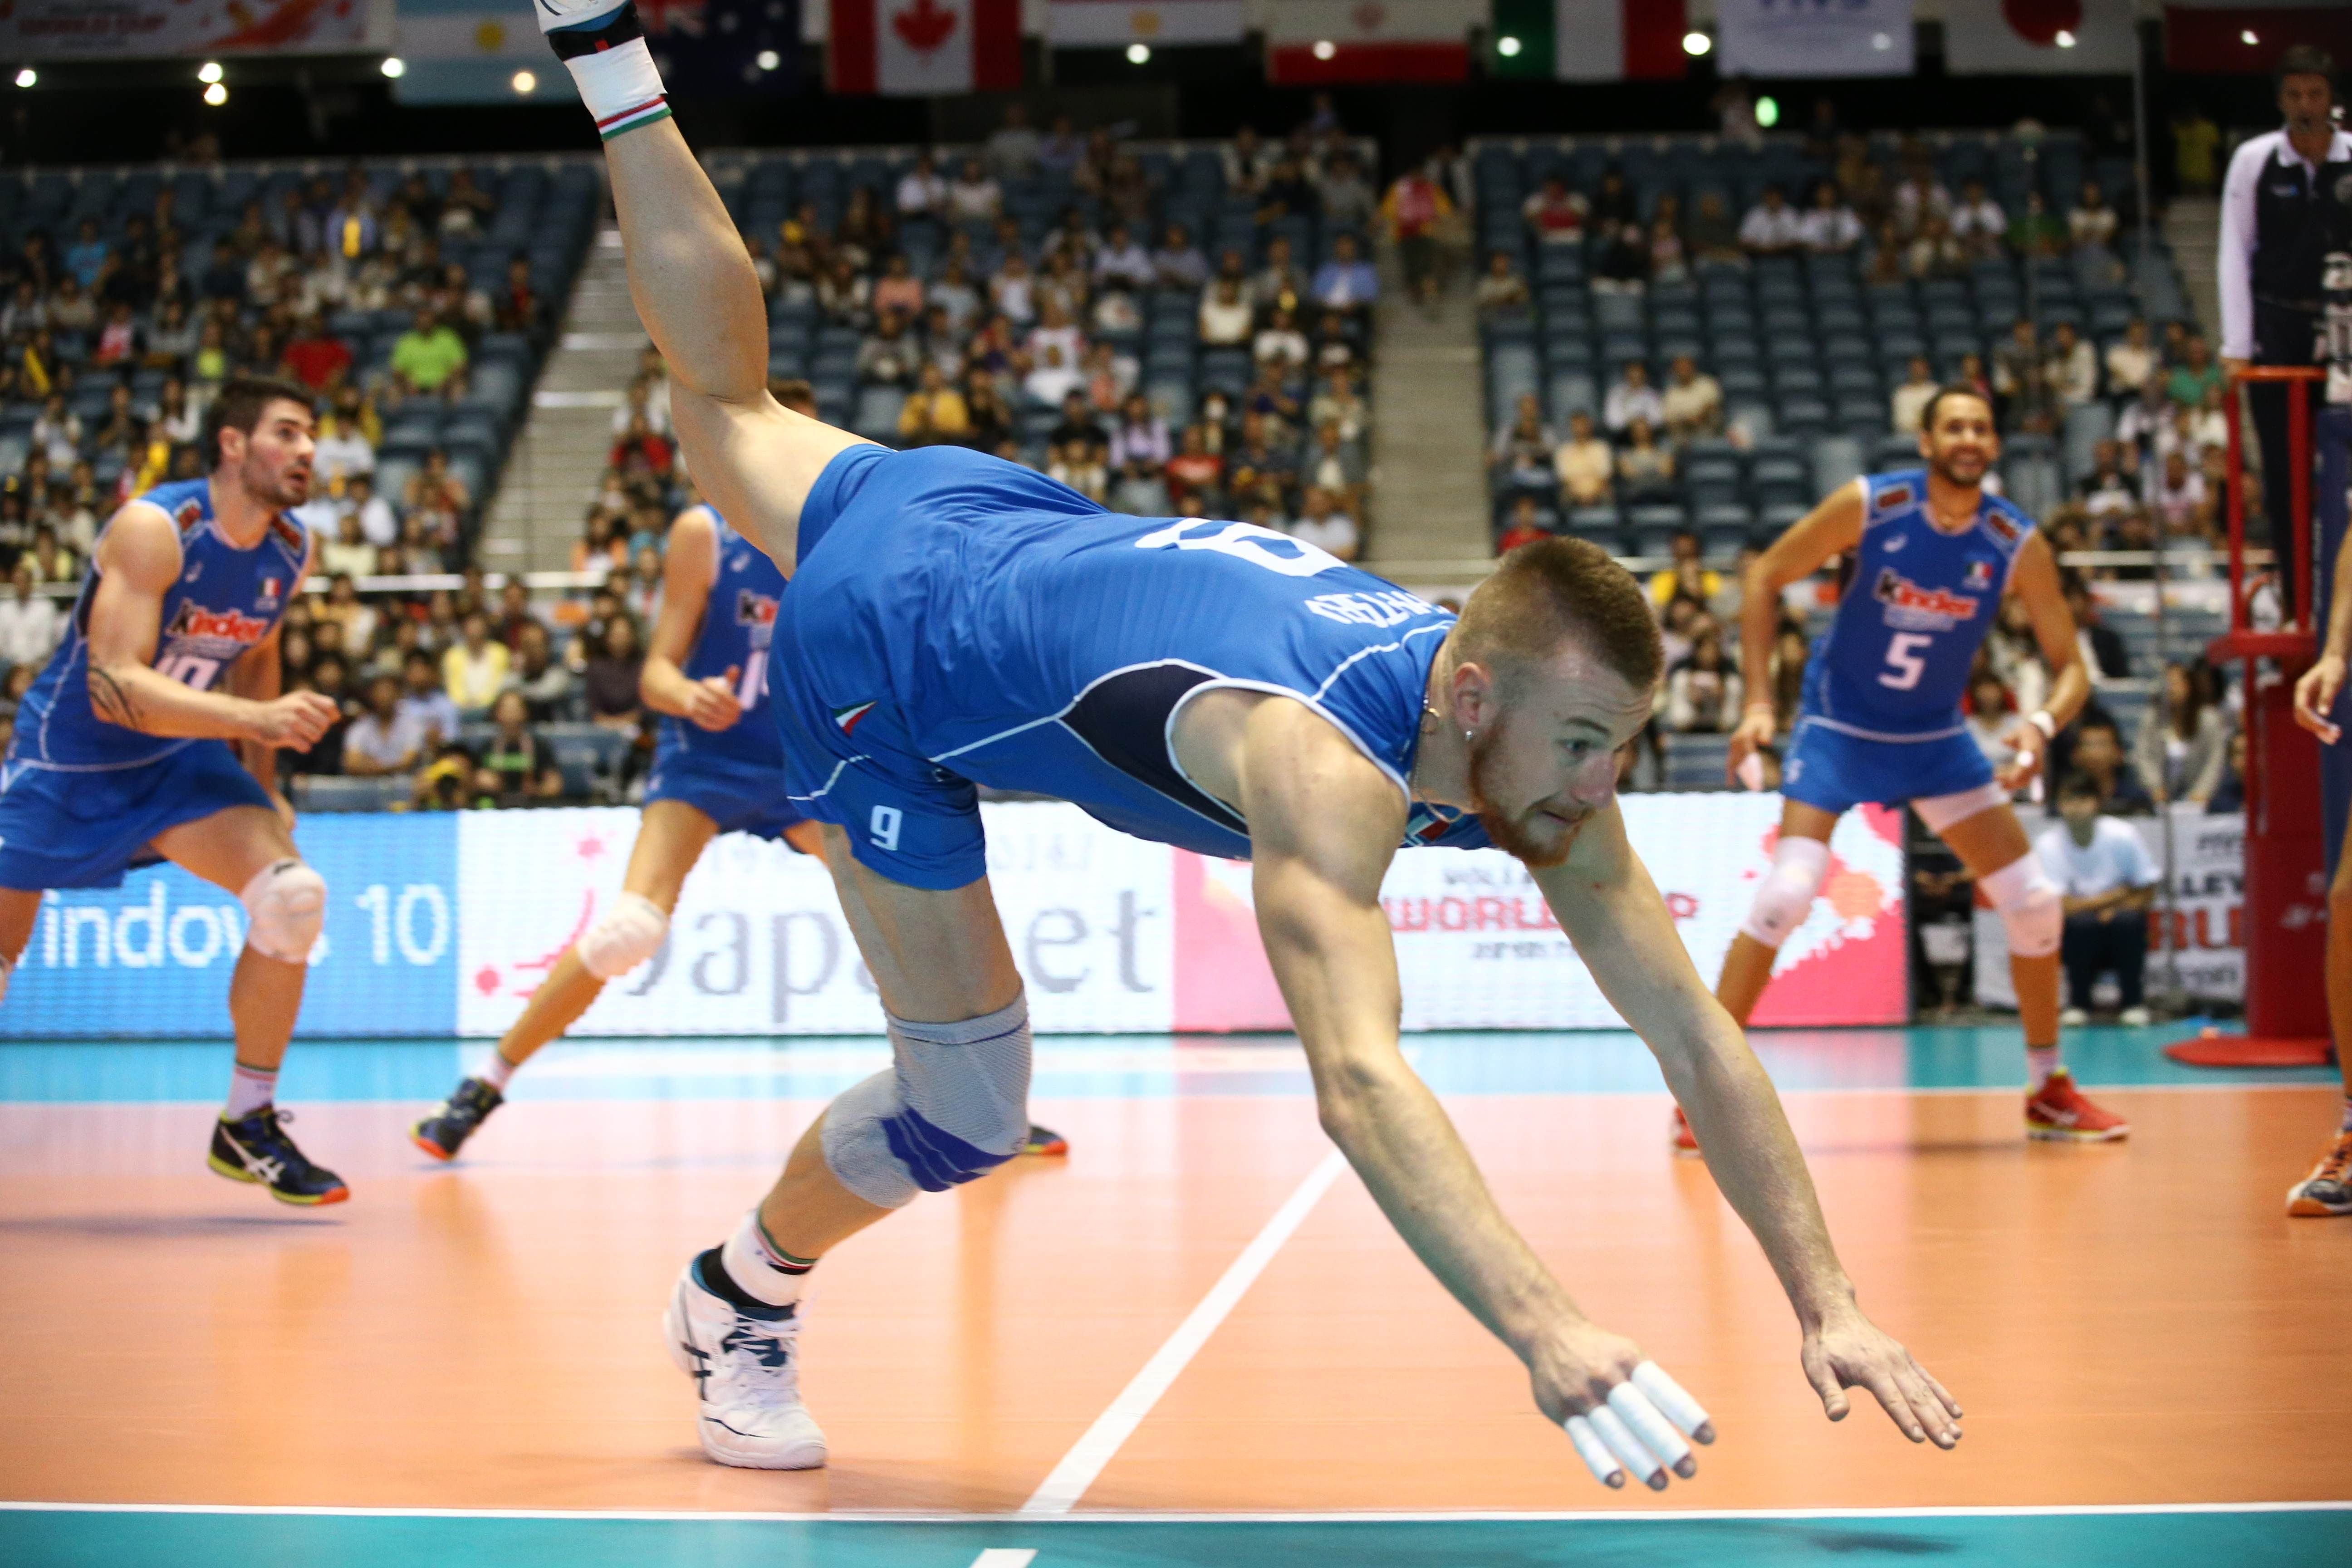 Ivan Zaytsev Digs For The Ball In 2020 Volleyball Volleyball Wallpaper Volley